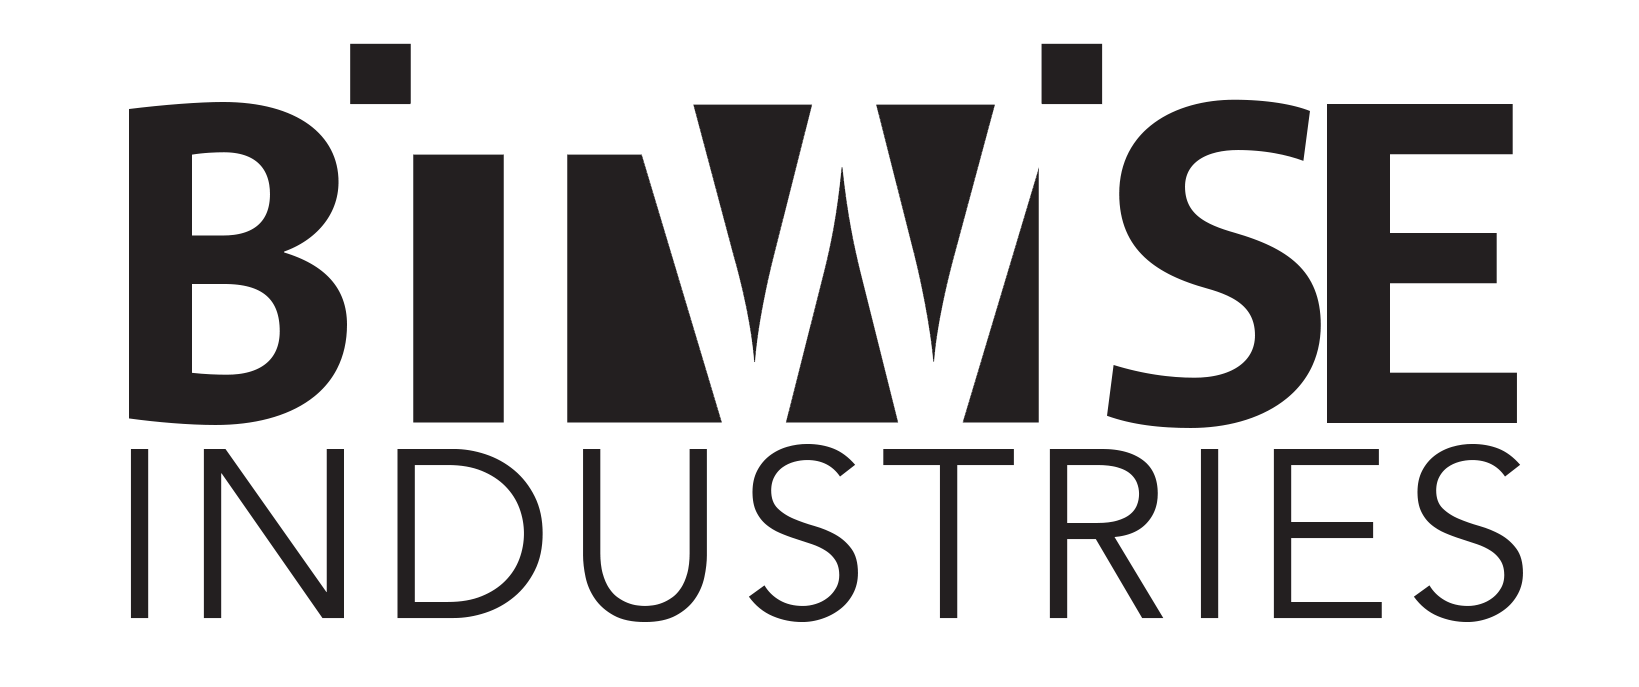 Bitwise industries logo.png